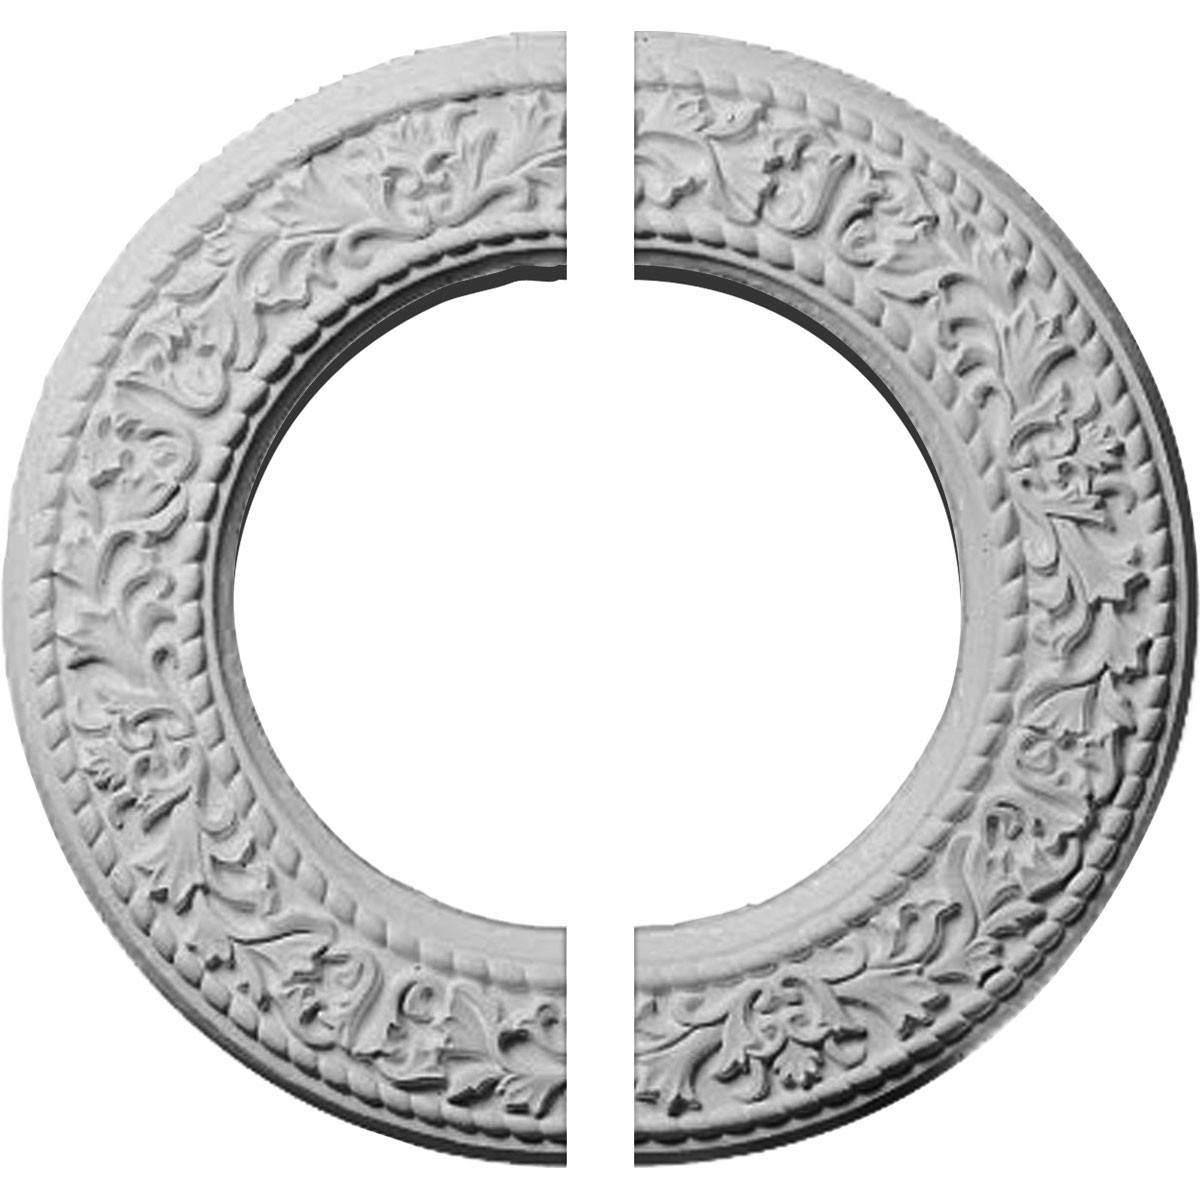 "EM-CM13BL2 - 13 3/8""OD x 7 1/2""ID x 3/4""P Blackthorn Ceiling Medallion, Two Piece (Fits Canopies up to 7 1/2"")"